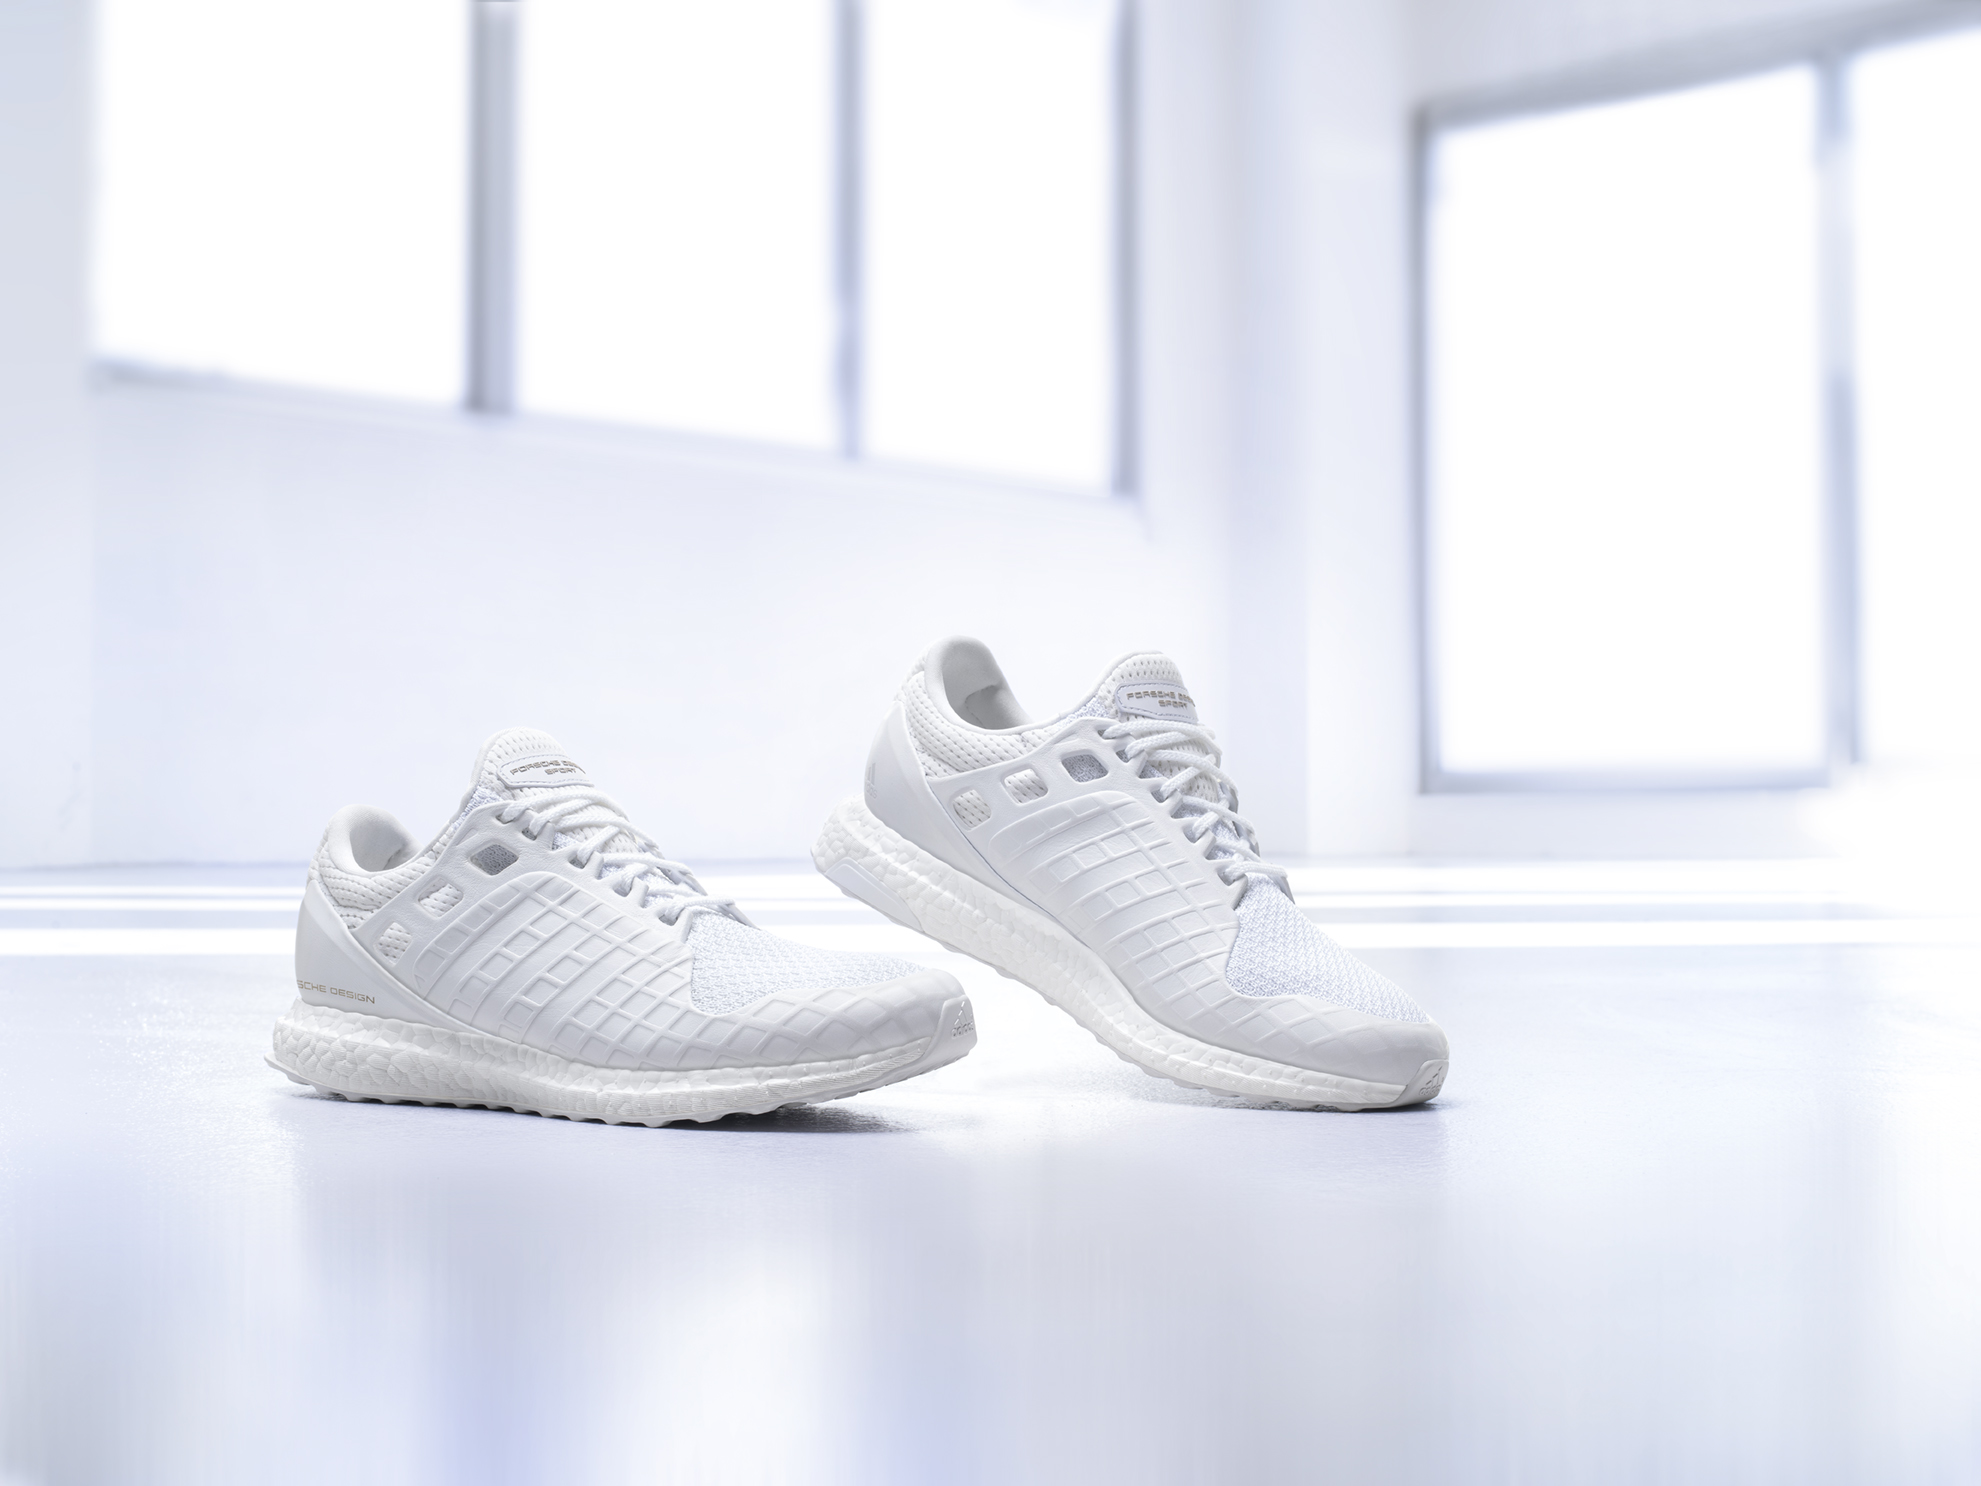 Porsche Design Sport by adidas releases the all white UltraBOOST-5